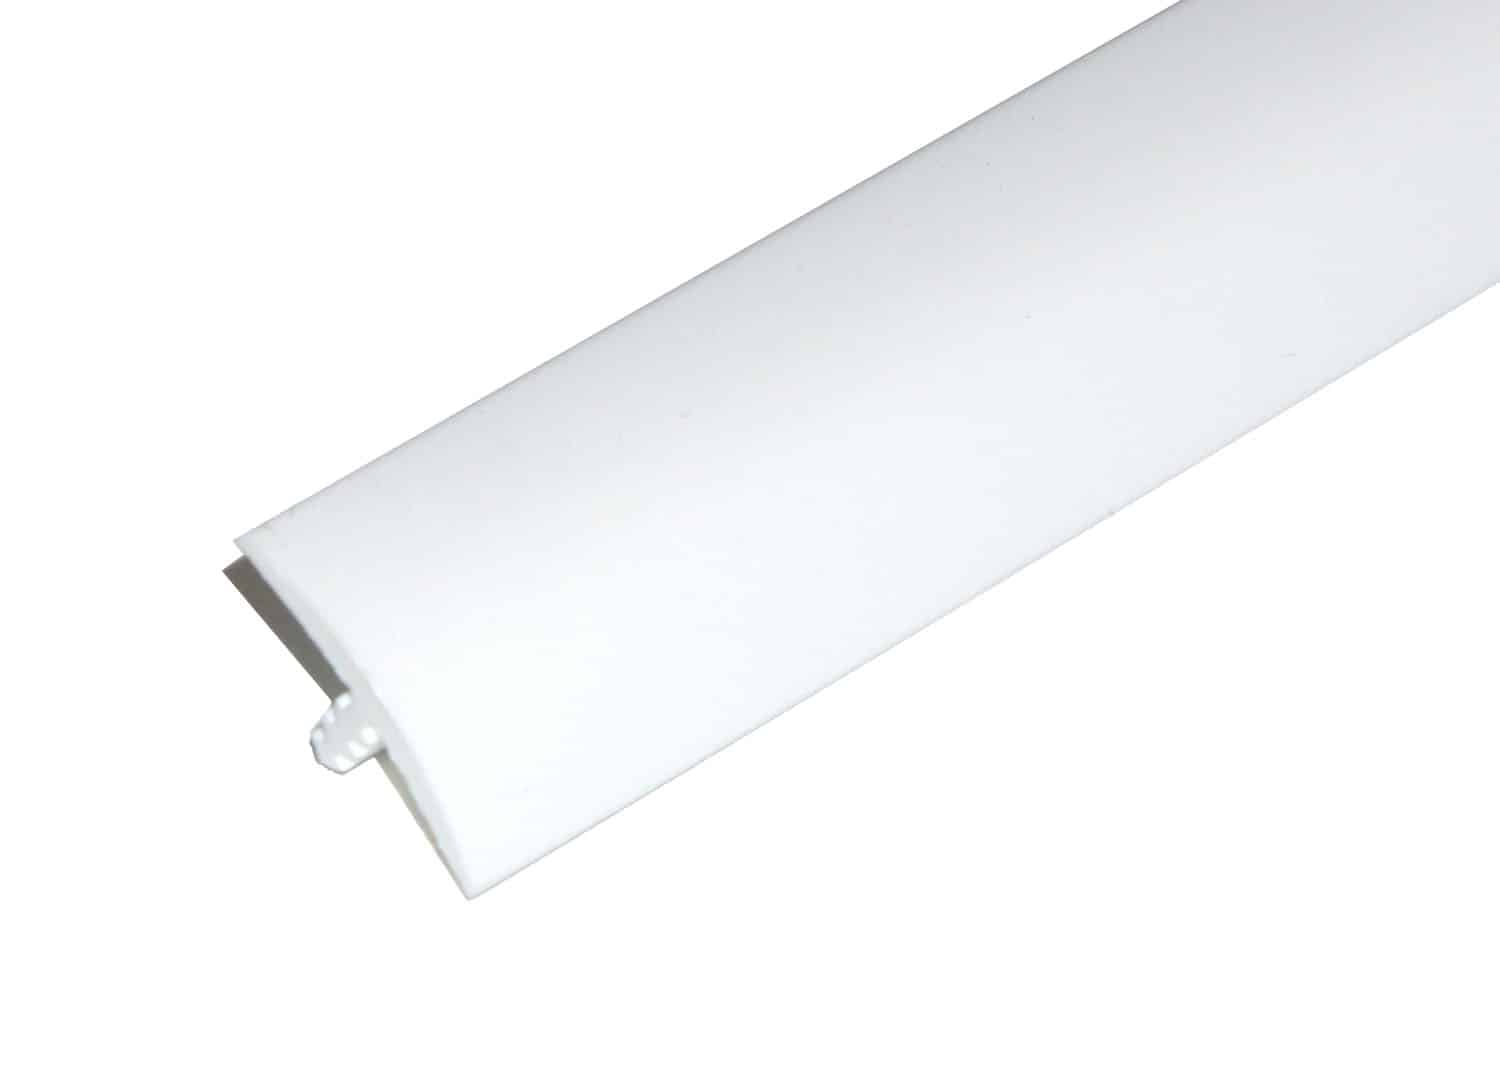 White 3 Quarter Inch T-Molding 19.5mm Trim Image